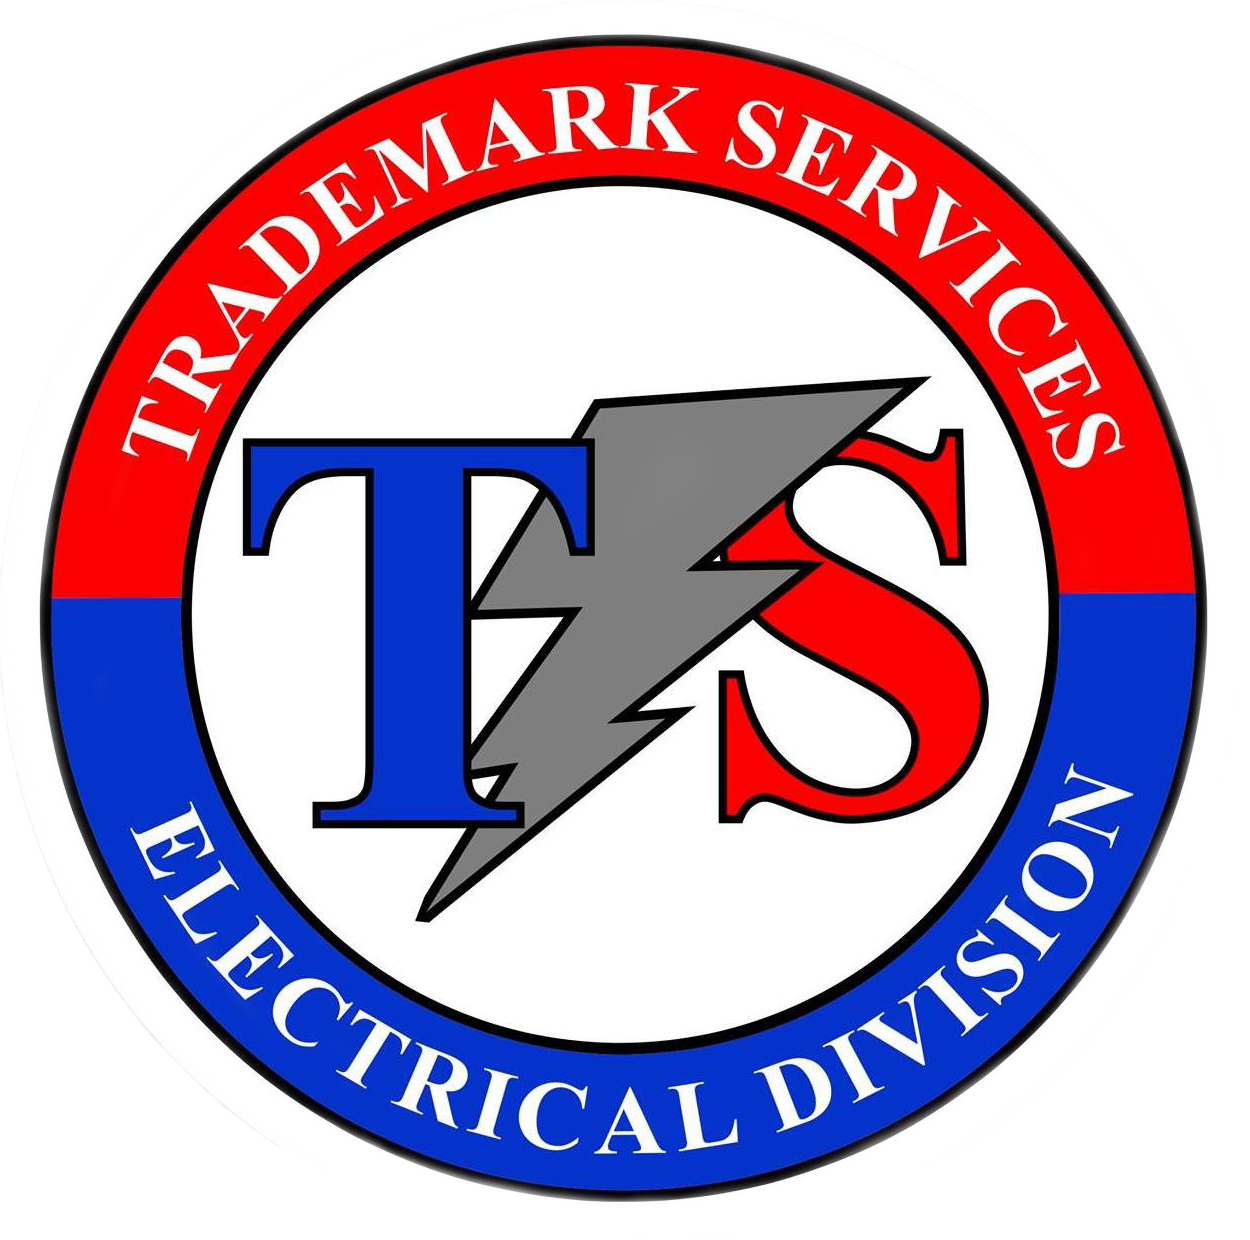 Trademark Services Electrical Division